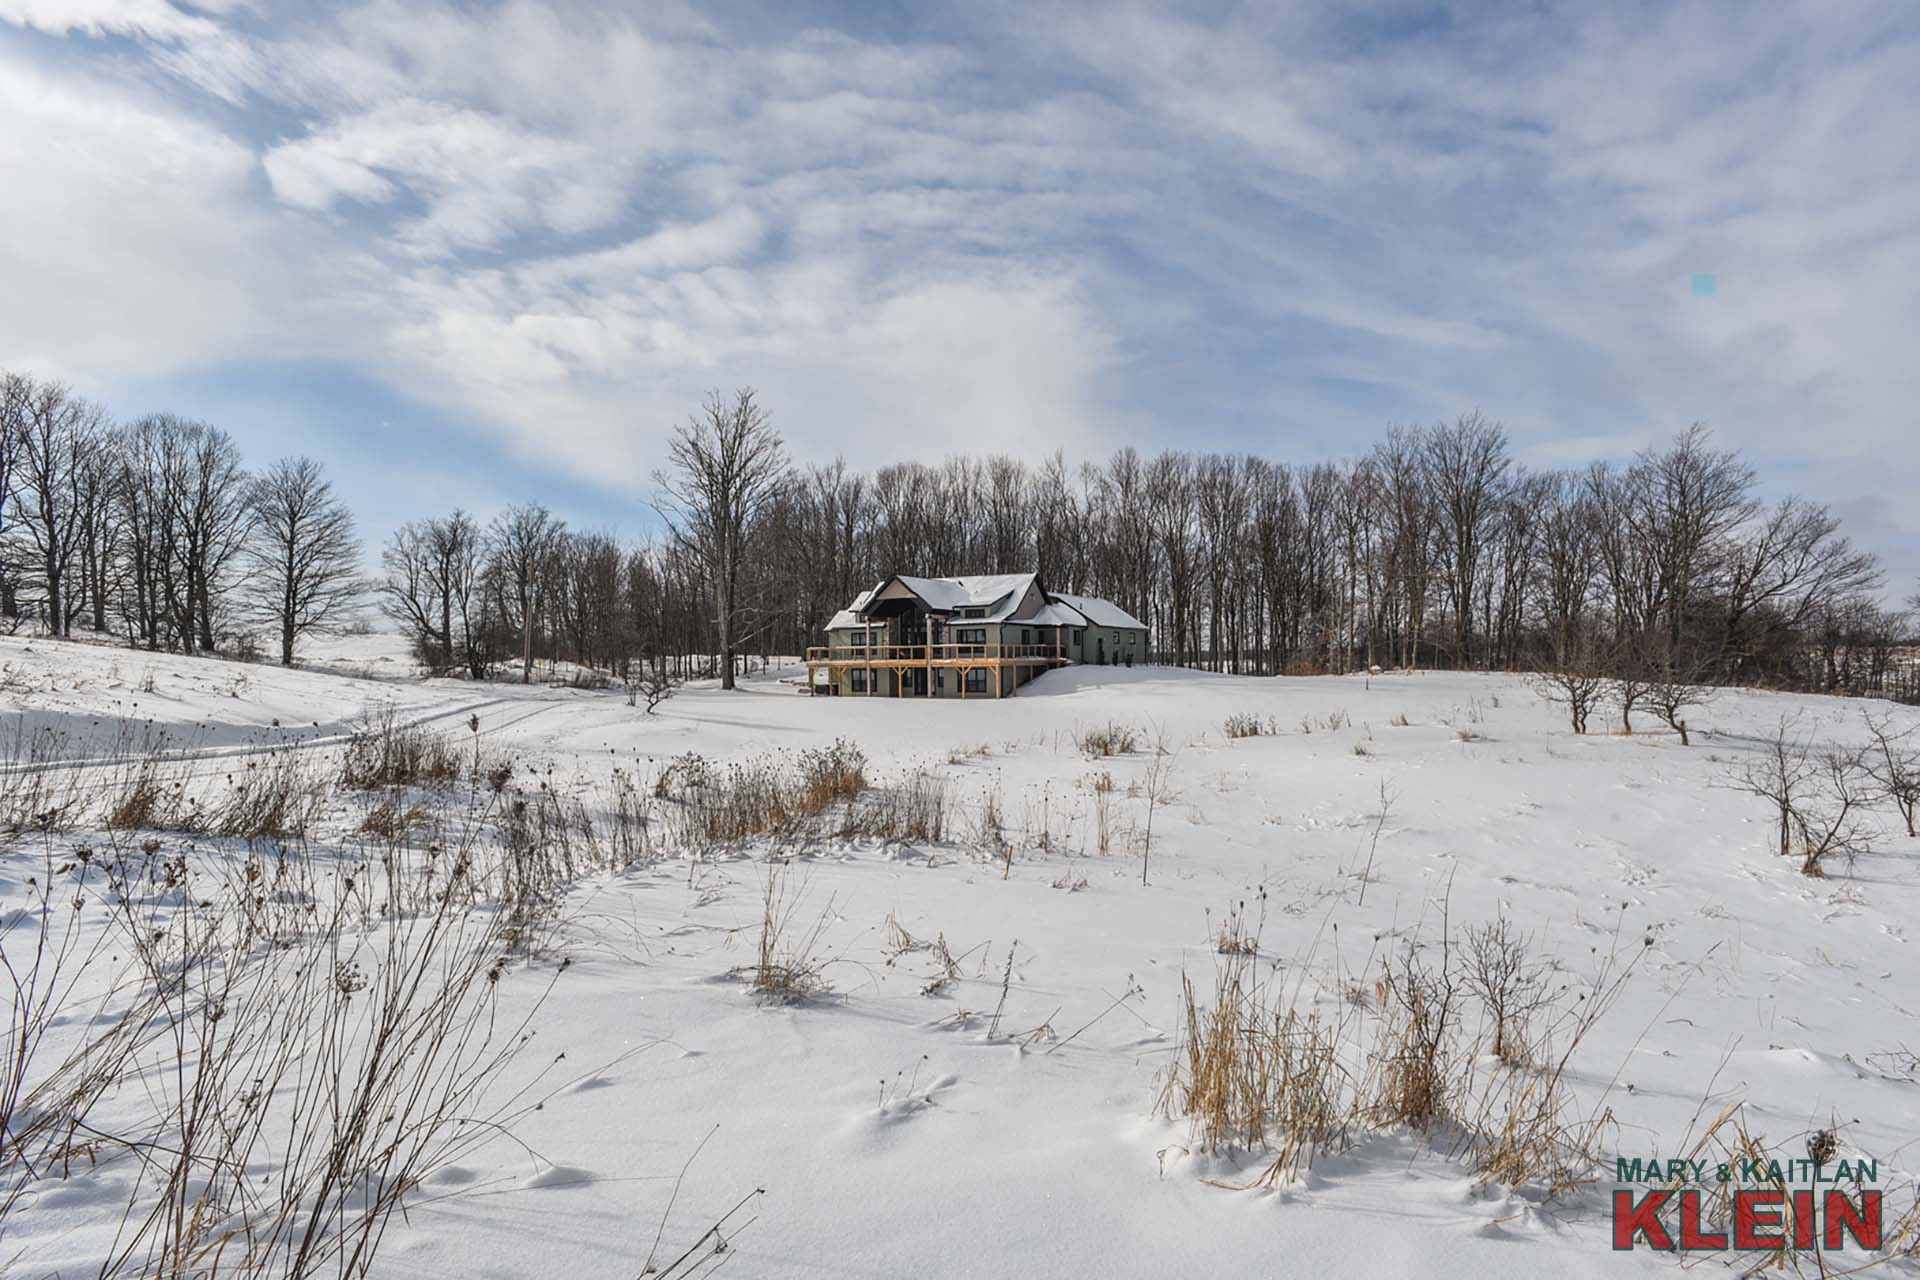 3-Bedroom Home for Sale in Mulmur on 24 Acres